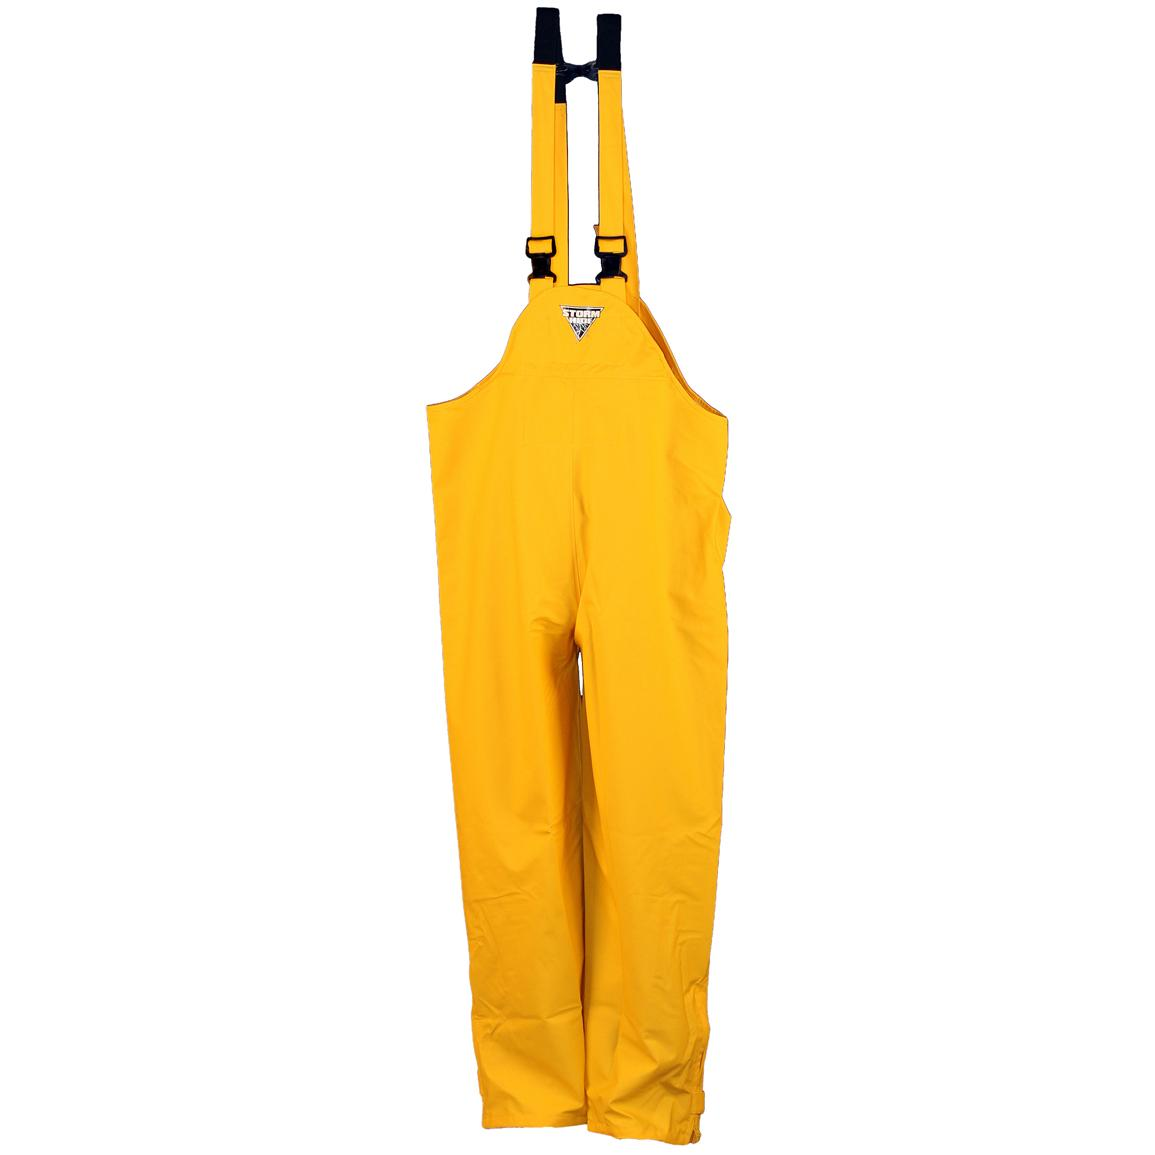 Men's WATERPROOF StormHide Down Pour Bibs from Gamehide, Yellow